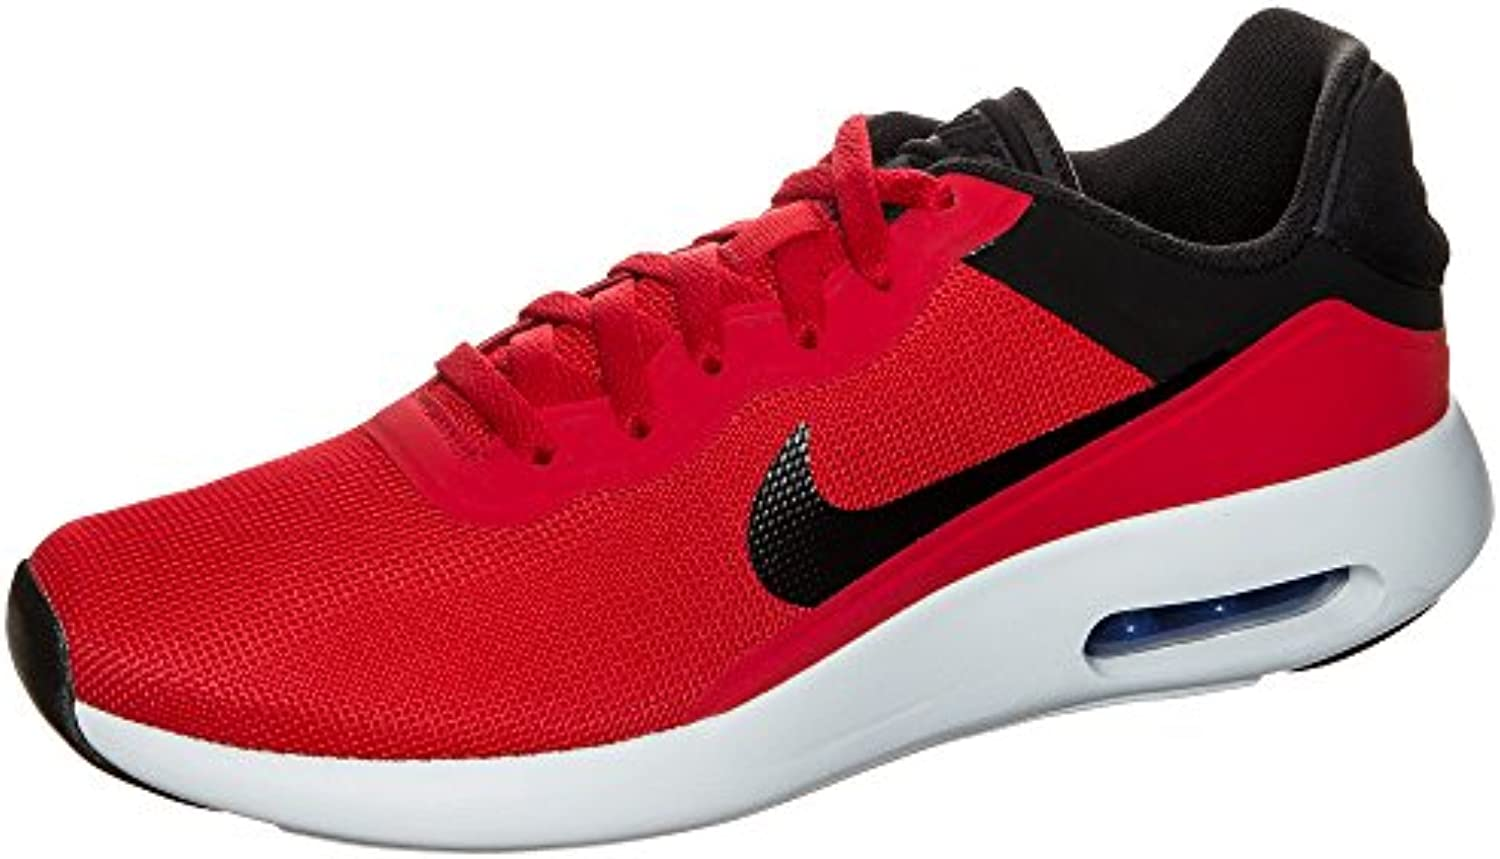 Nike Air Max Modern Essential Mens Running Trainers 844874 Sneakers Shoes (Uk 6.5 Us 7.5 Eu 40.5  university red